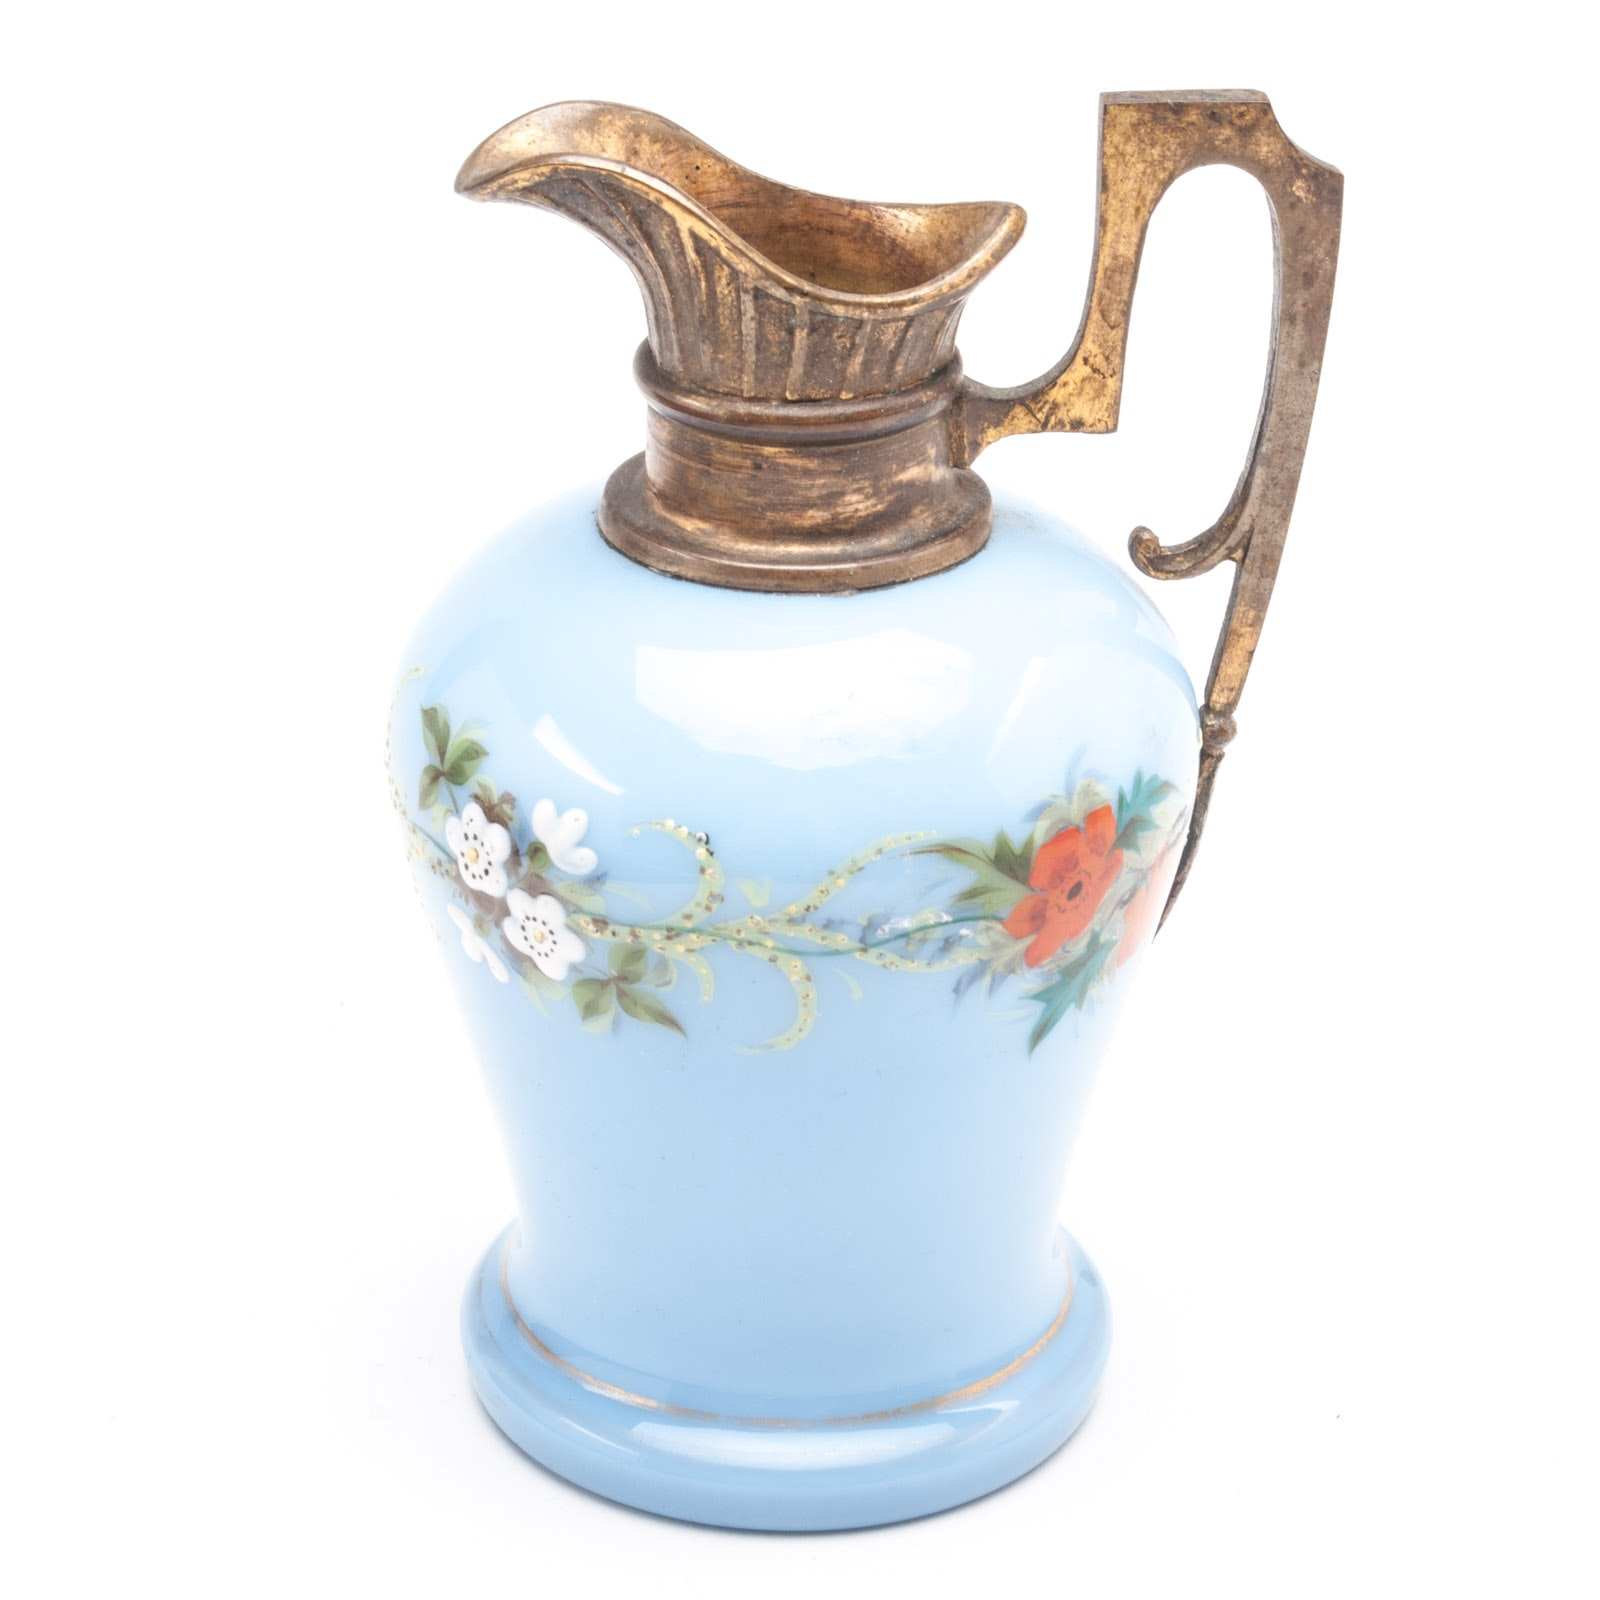 Hand Painted Ceramic Pitcher with Brass Handle and Spout